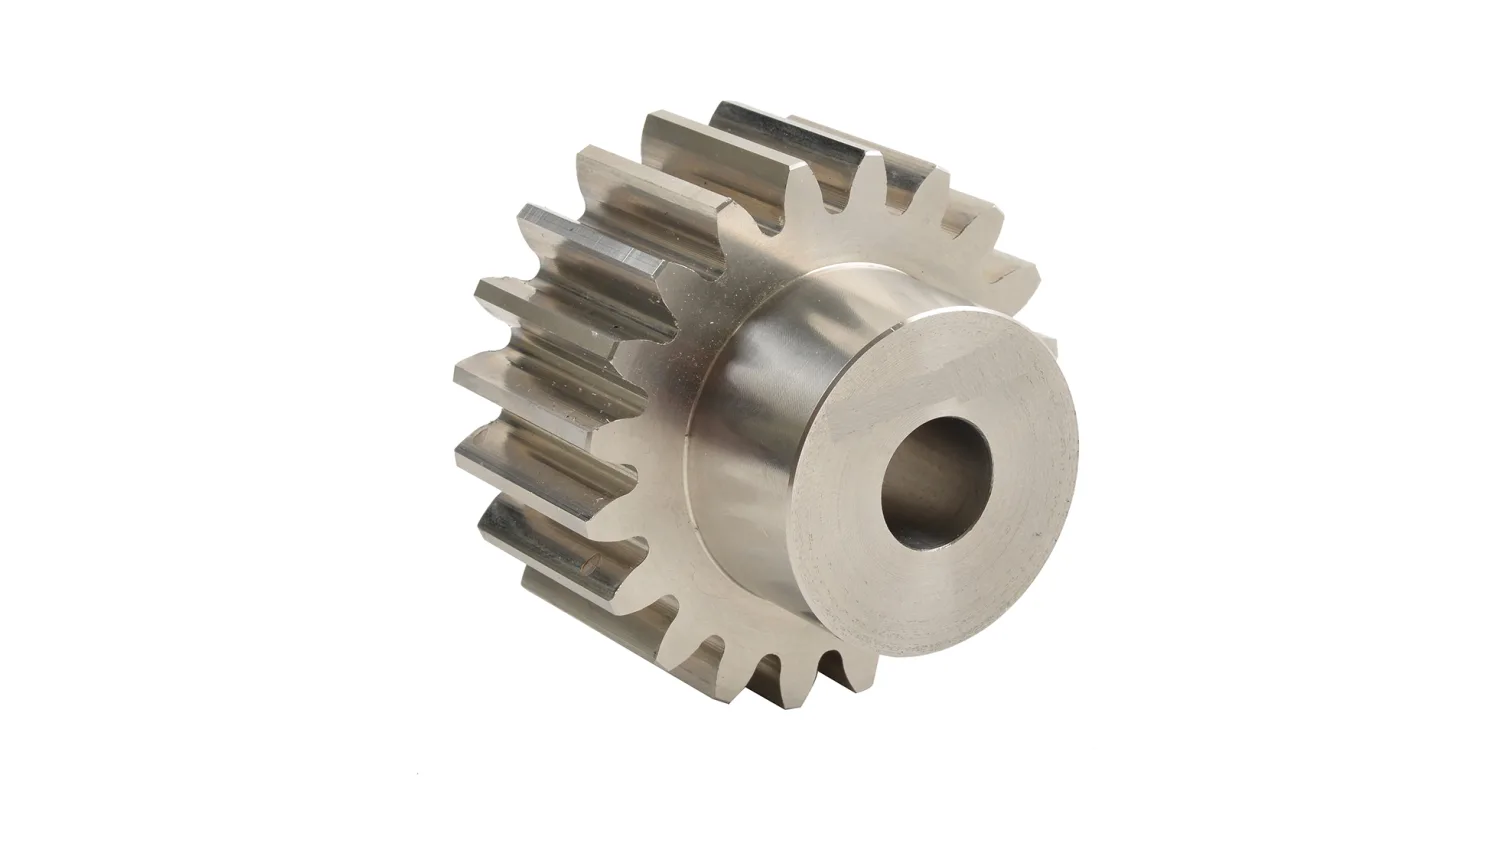 2-Mod-x-22-Tooth-Metric-Spur-Gear-in-Steel